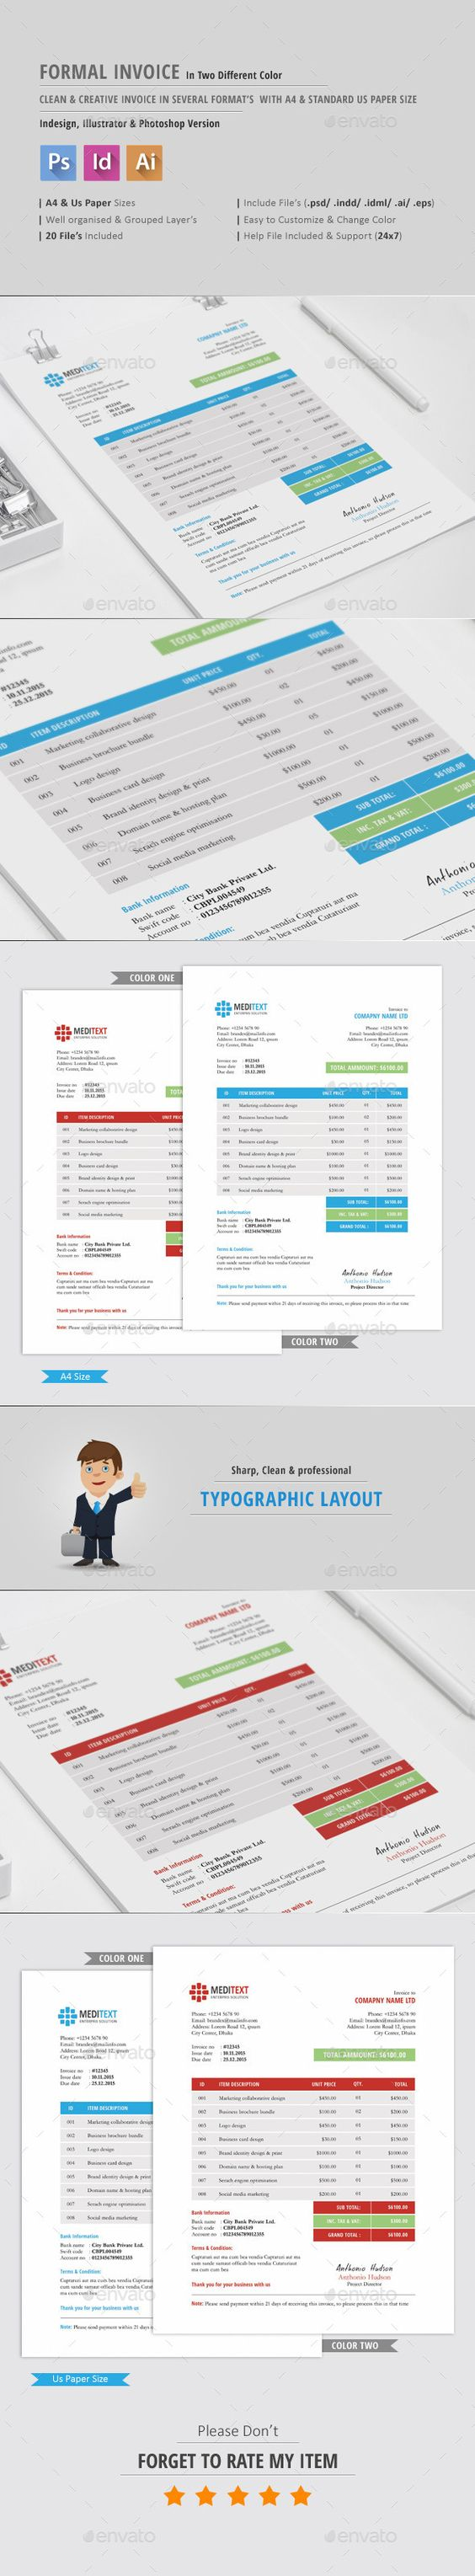 Formal Invoice Template – Formal Invoice